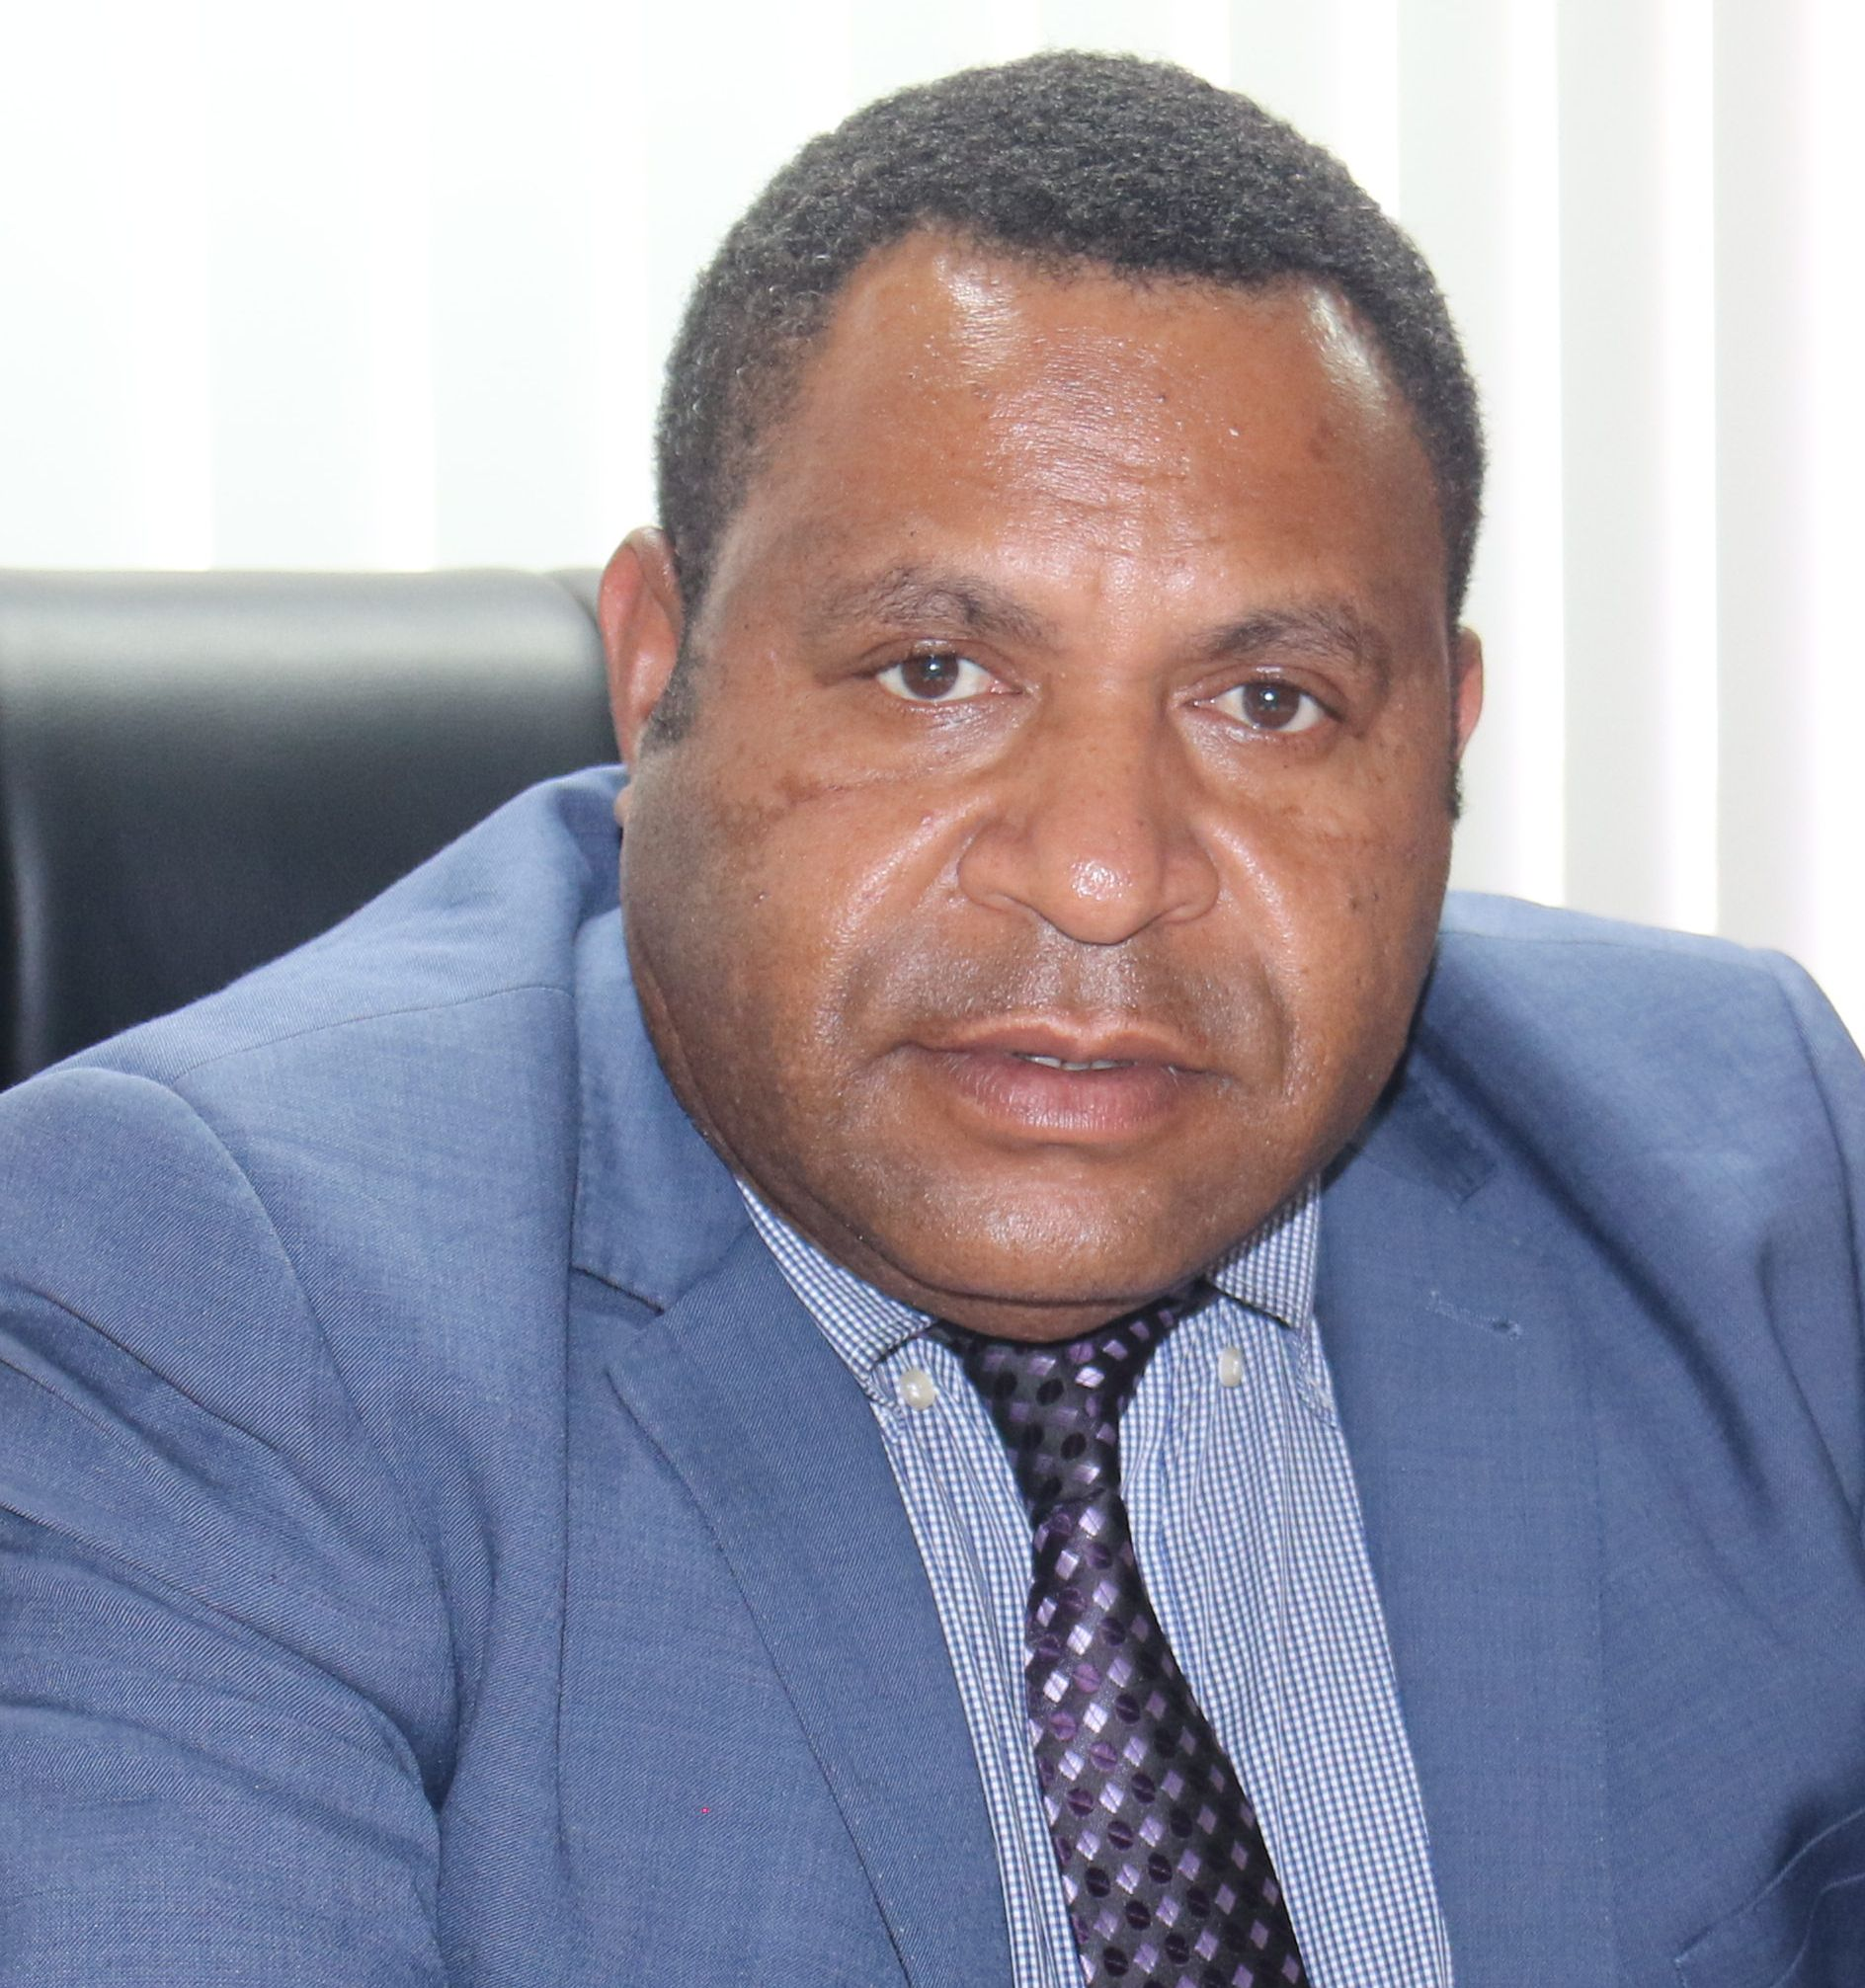 Statement from the PNG Power Board Chairman in response to an open letter from Disgruntled Former Employees